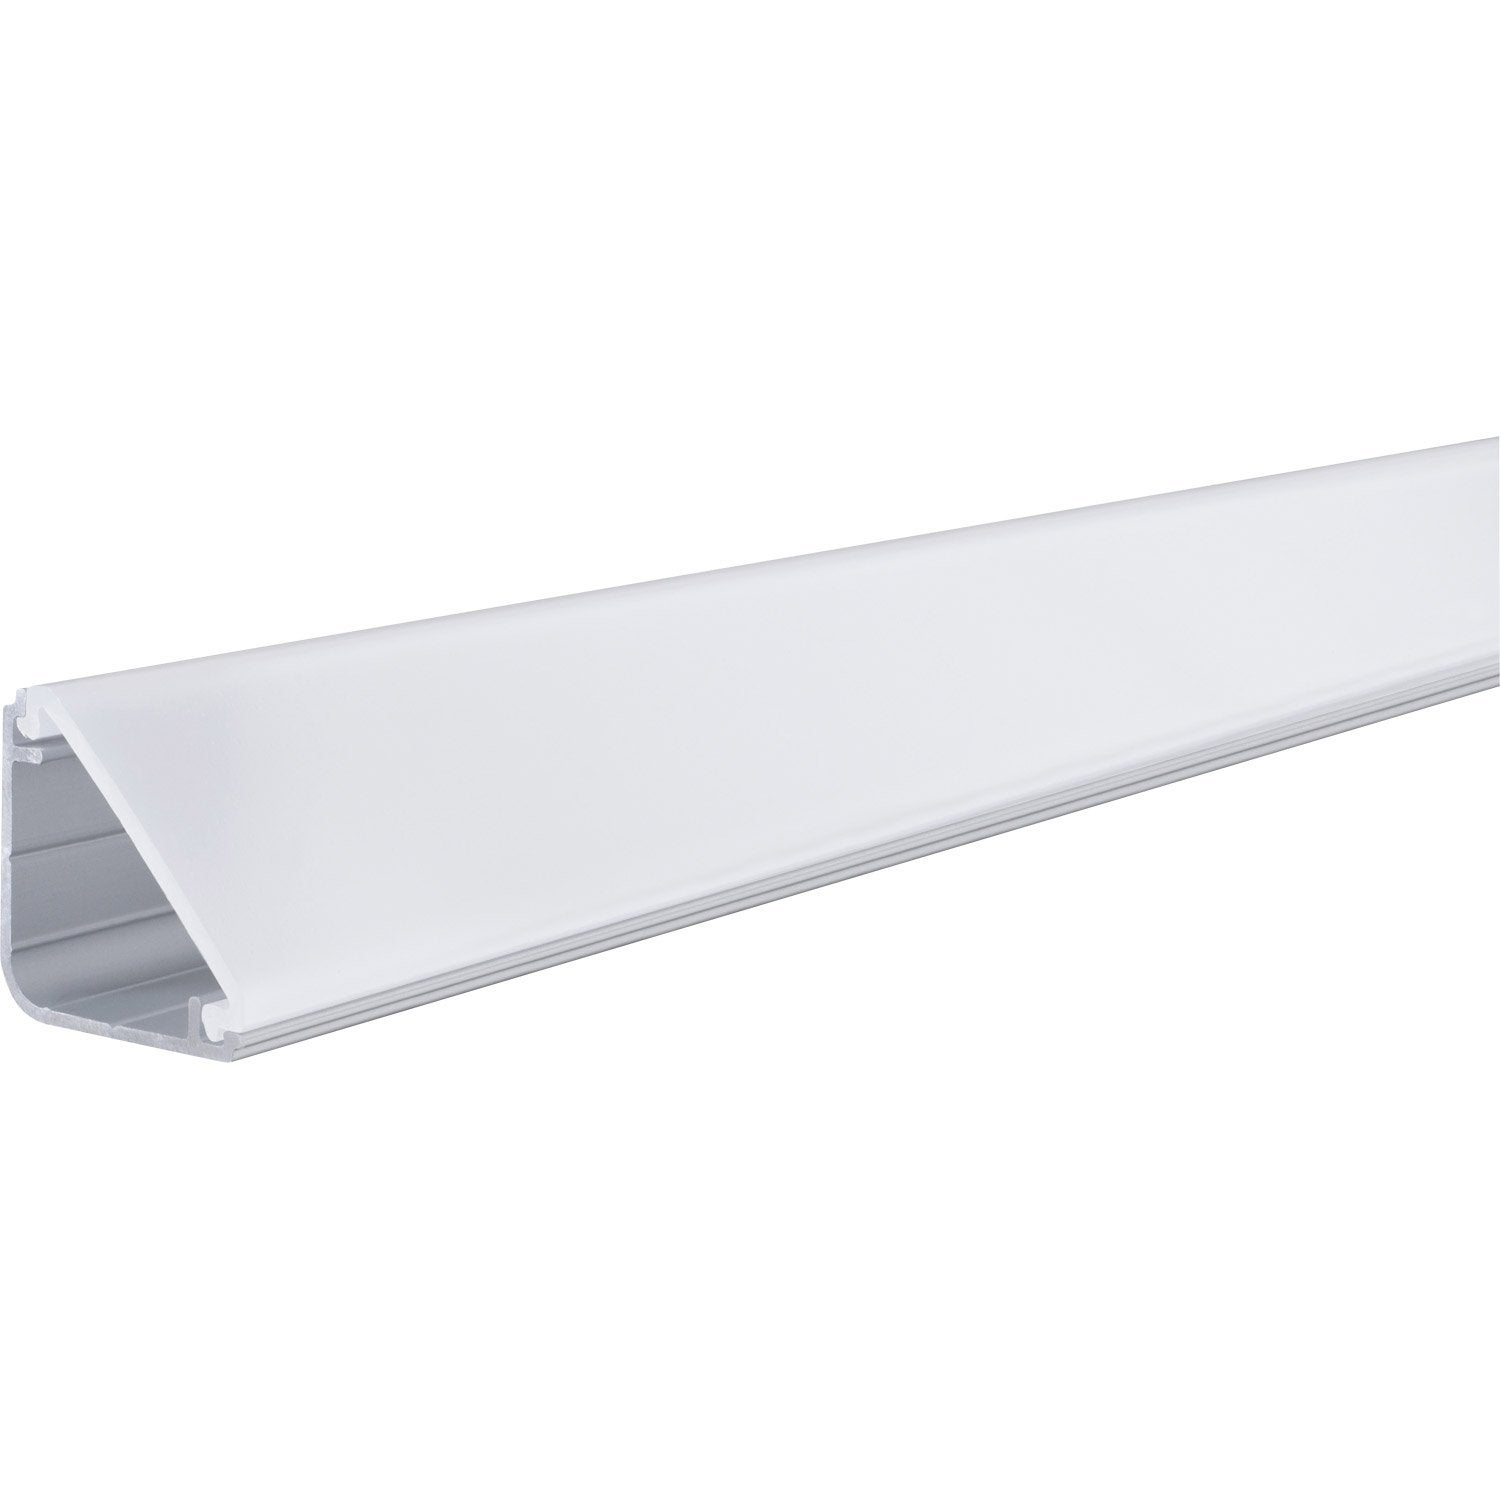 Profil pour ruban led delta profil leroy merlin for Profile pour carrelage